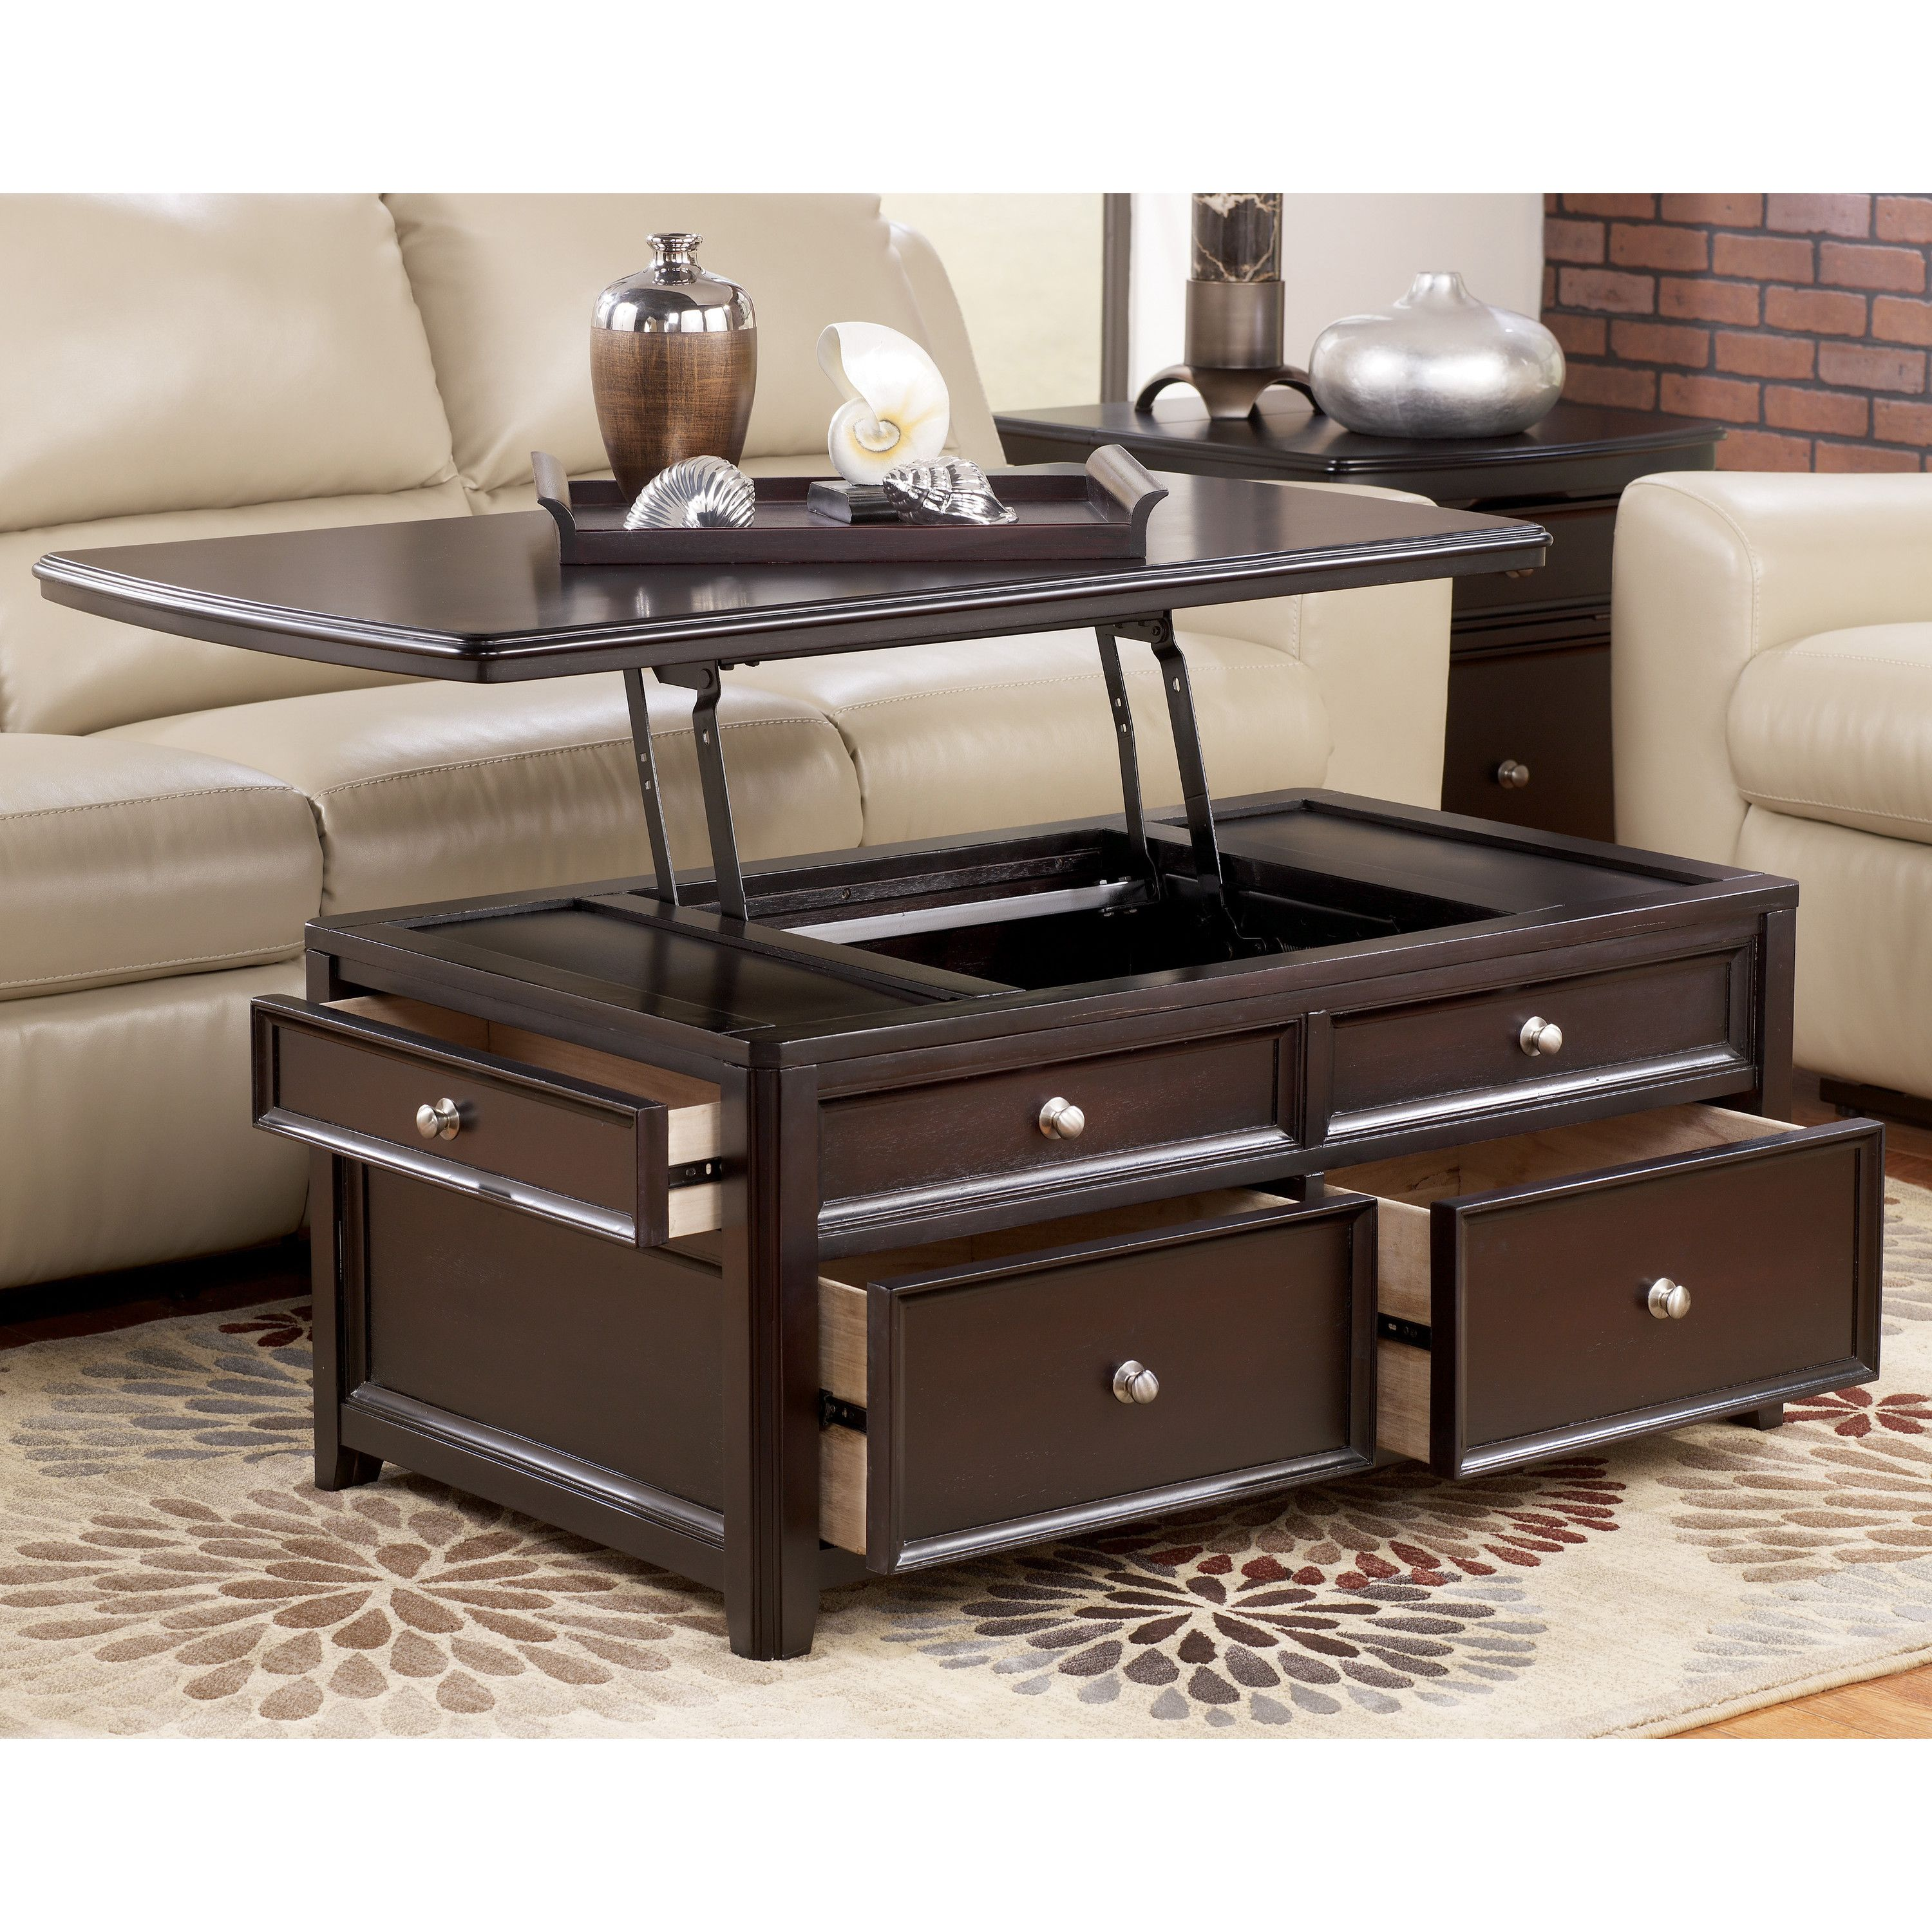 Darby Home Co Han Trunk Coffee Table With Lift Top